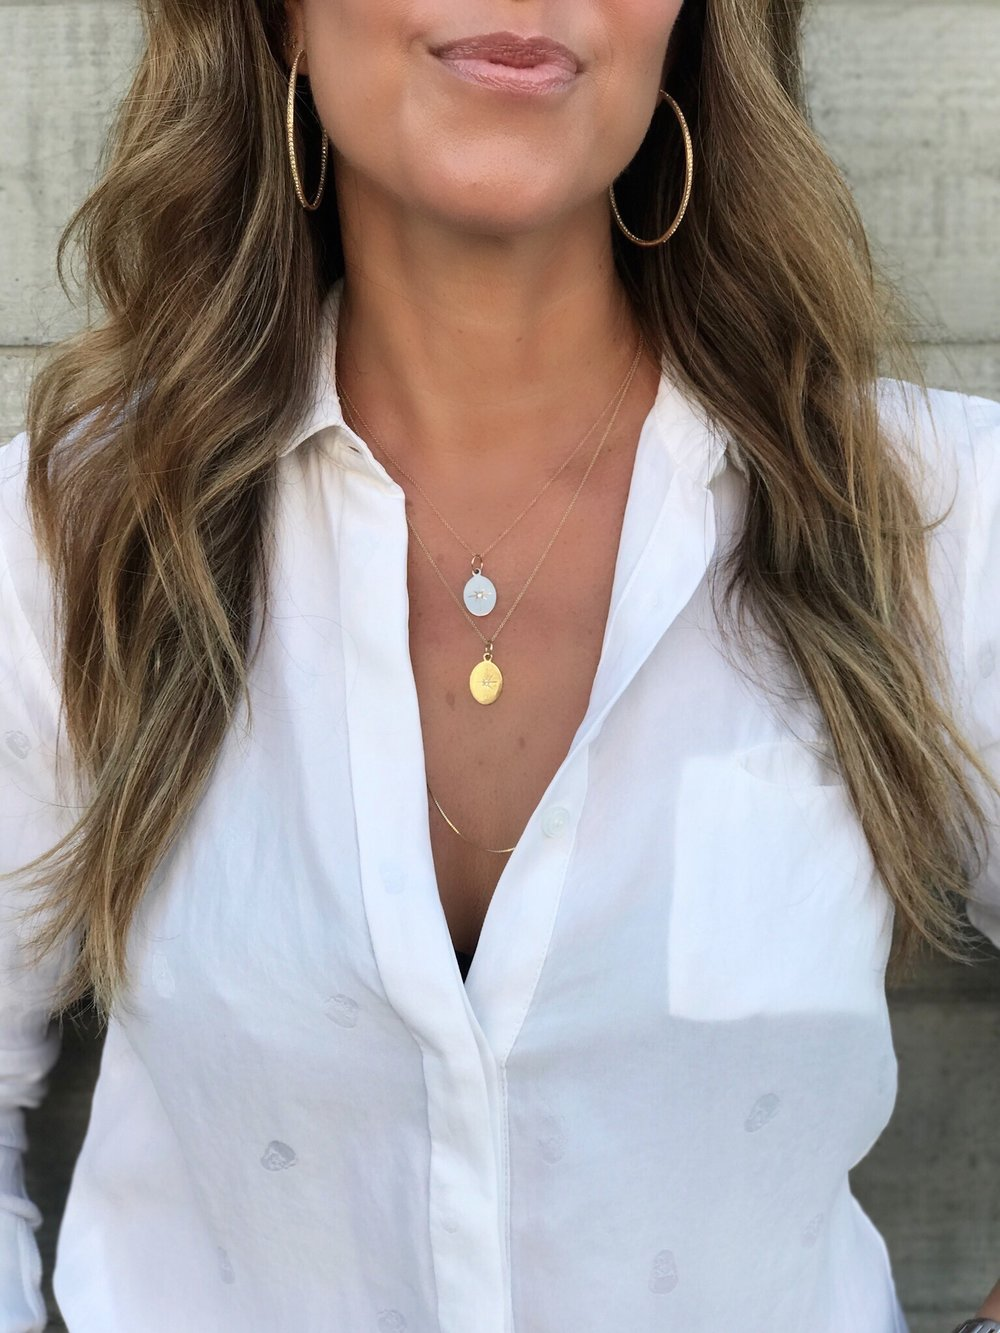 Melissa Meyers Glow Necklace